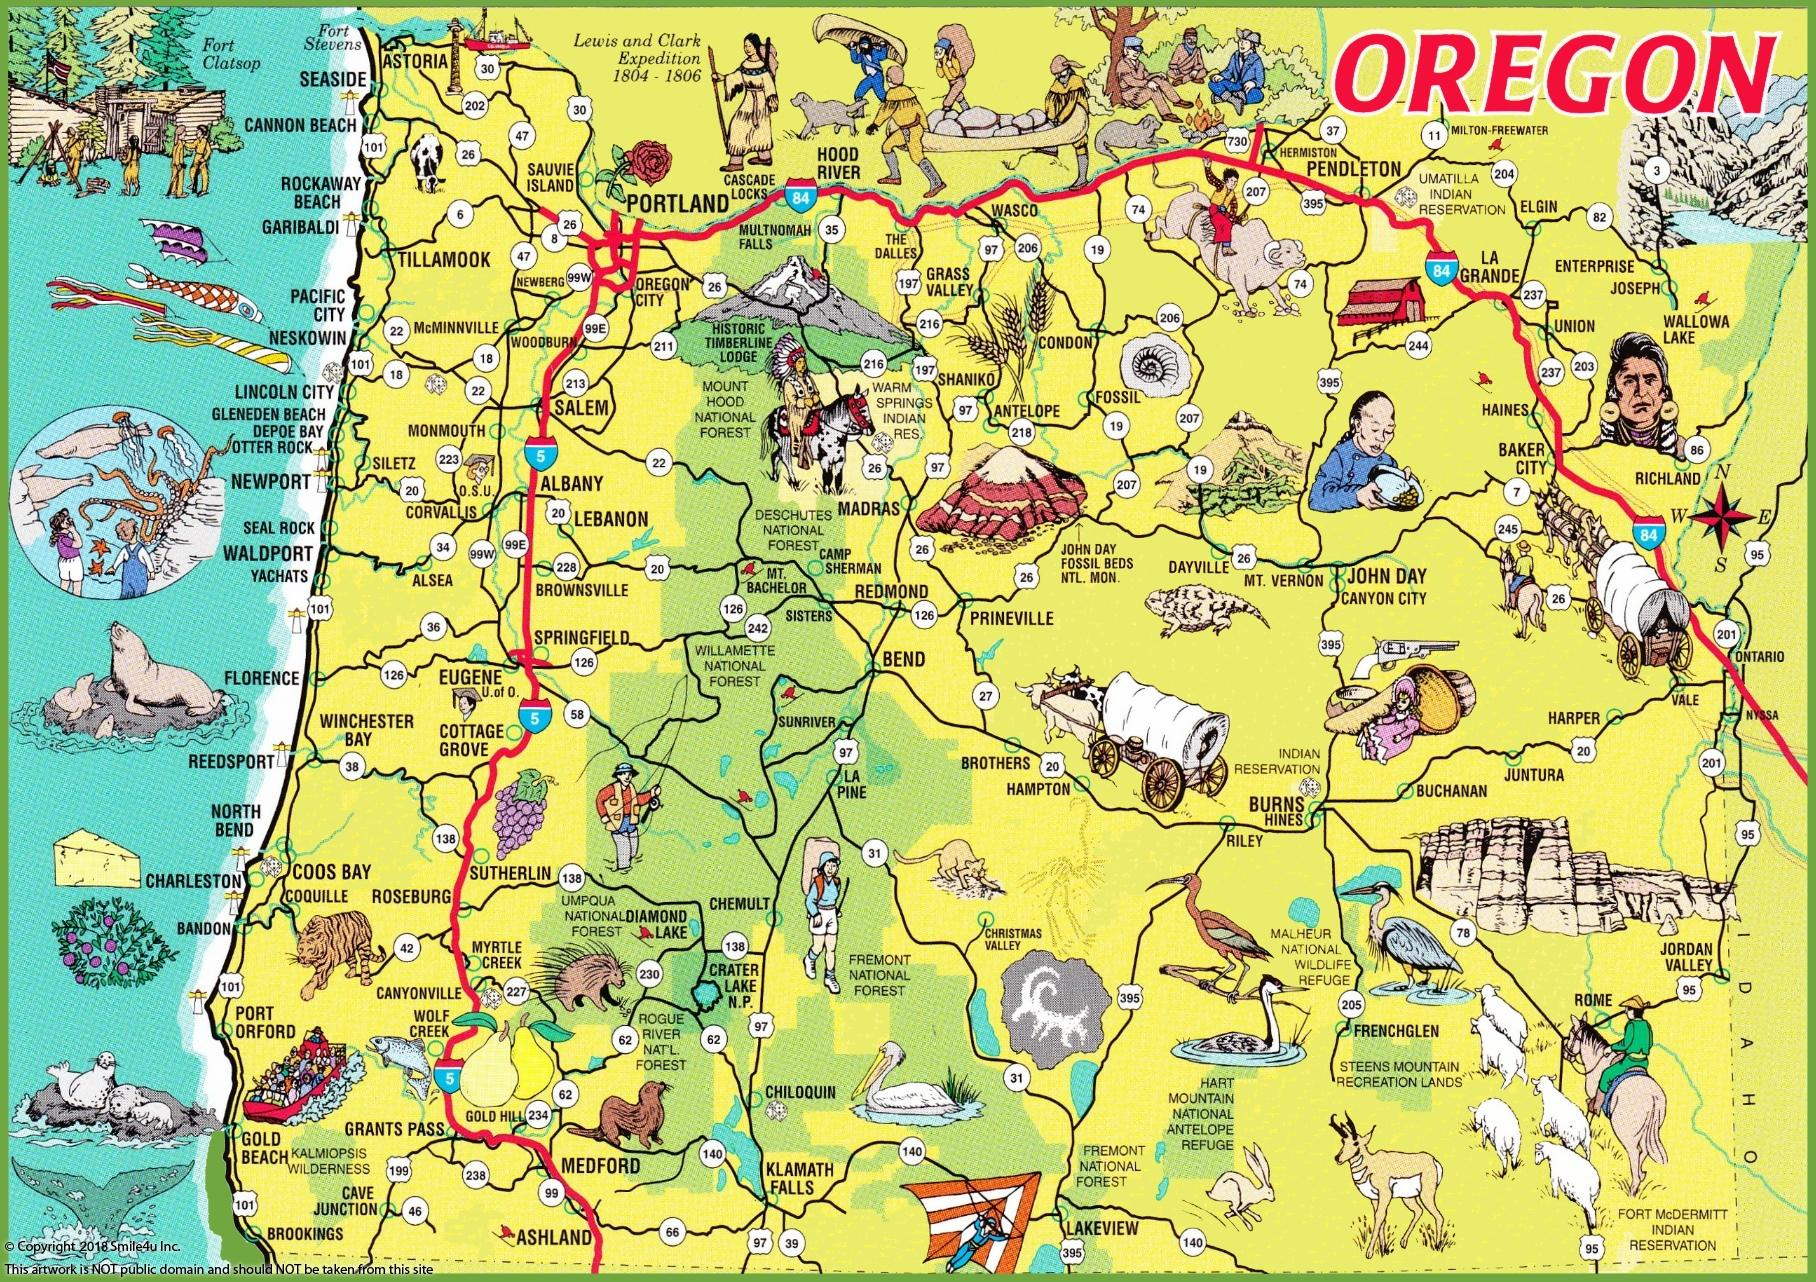 857643_watermarked_pictorial-travel-map-of-oregon.jpg